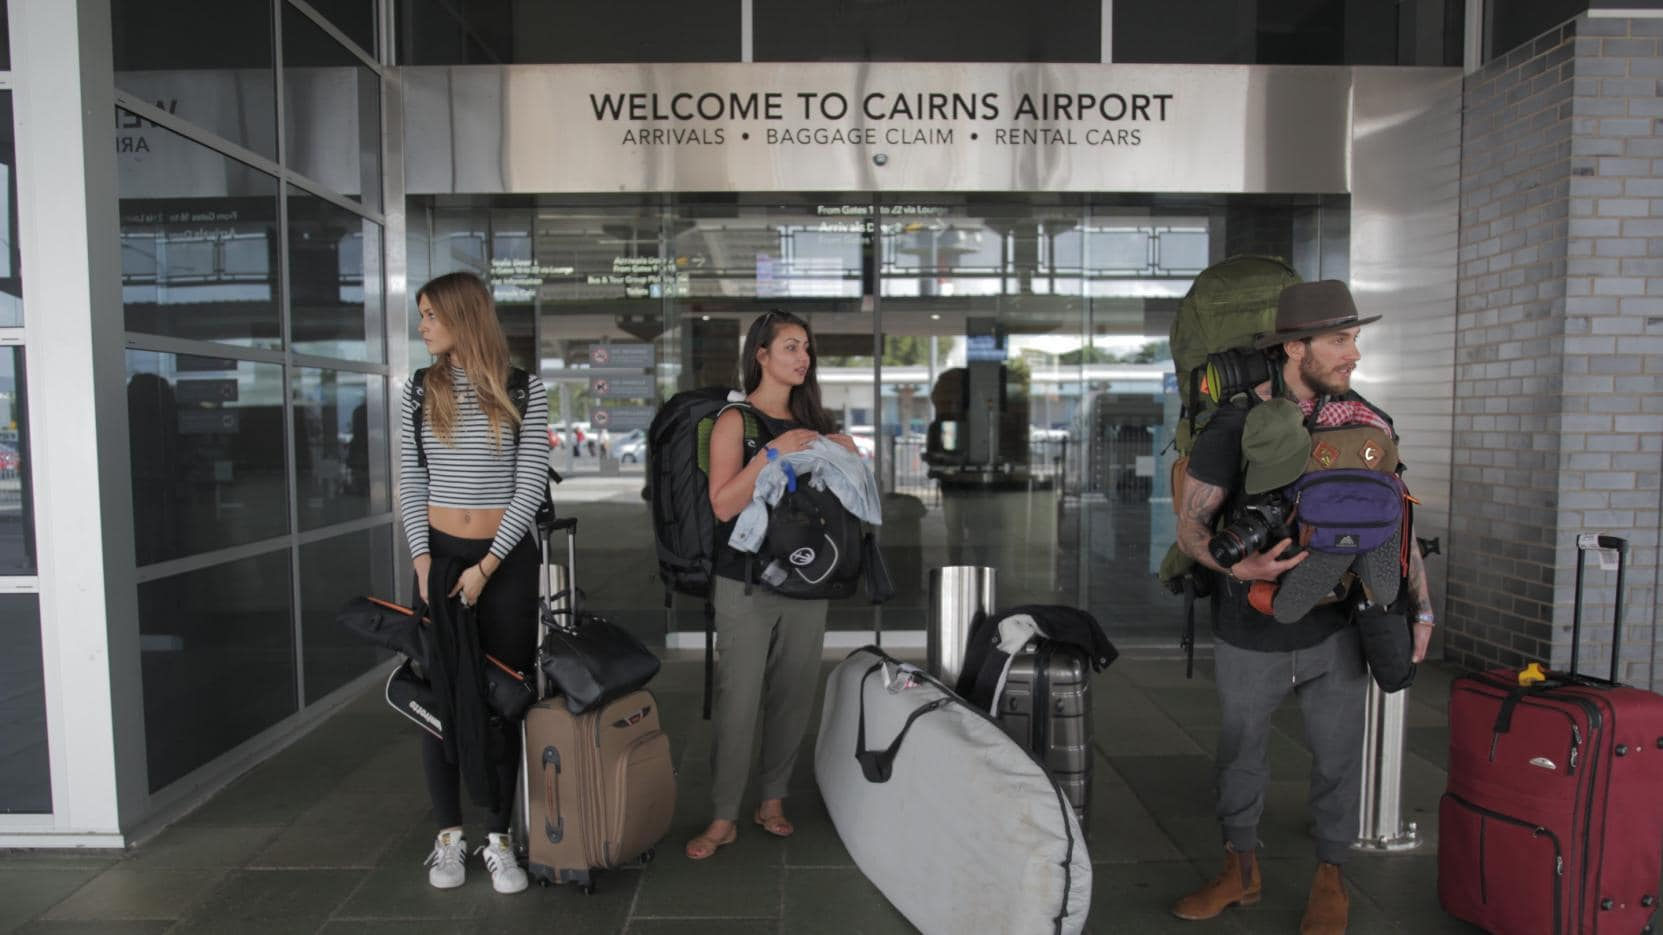 Cairns Airport, Cairns, Queensland © Hostels Australia